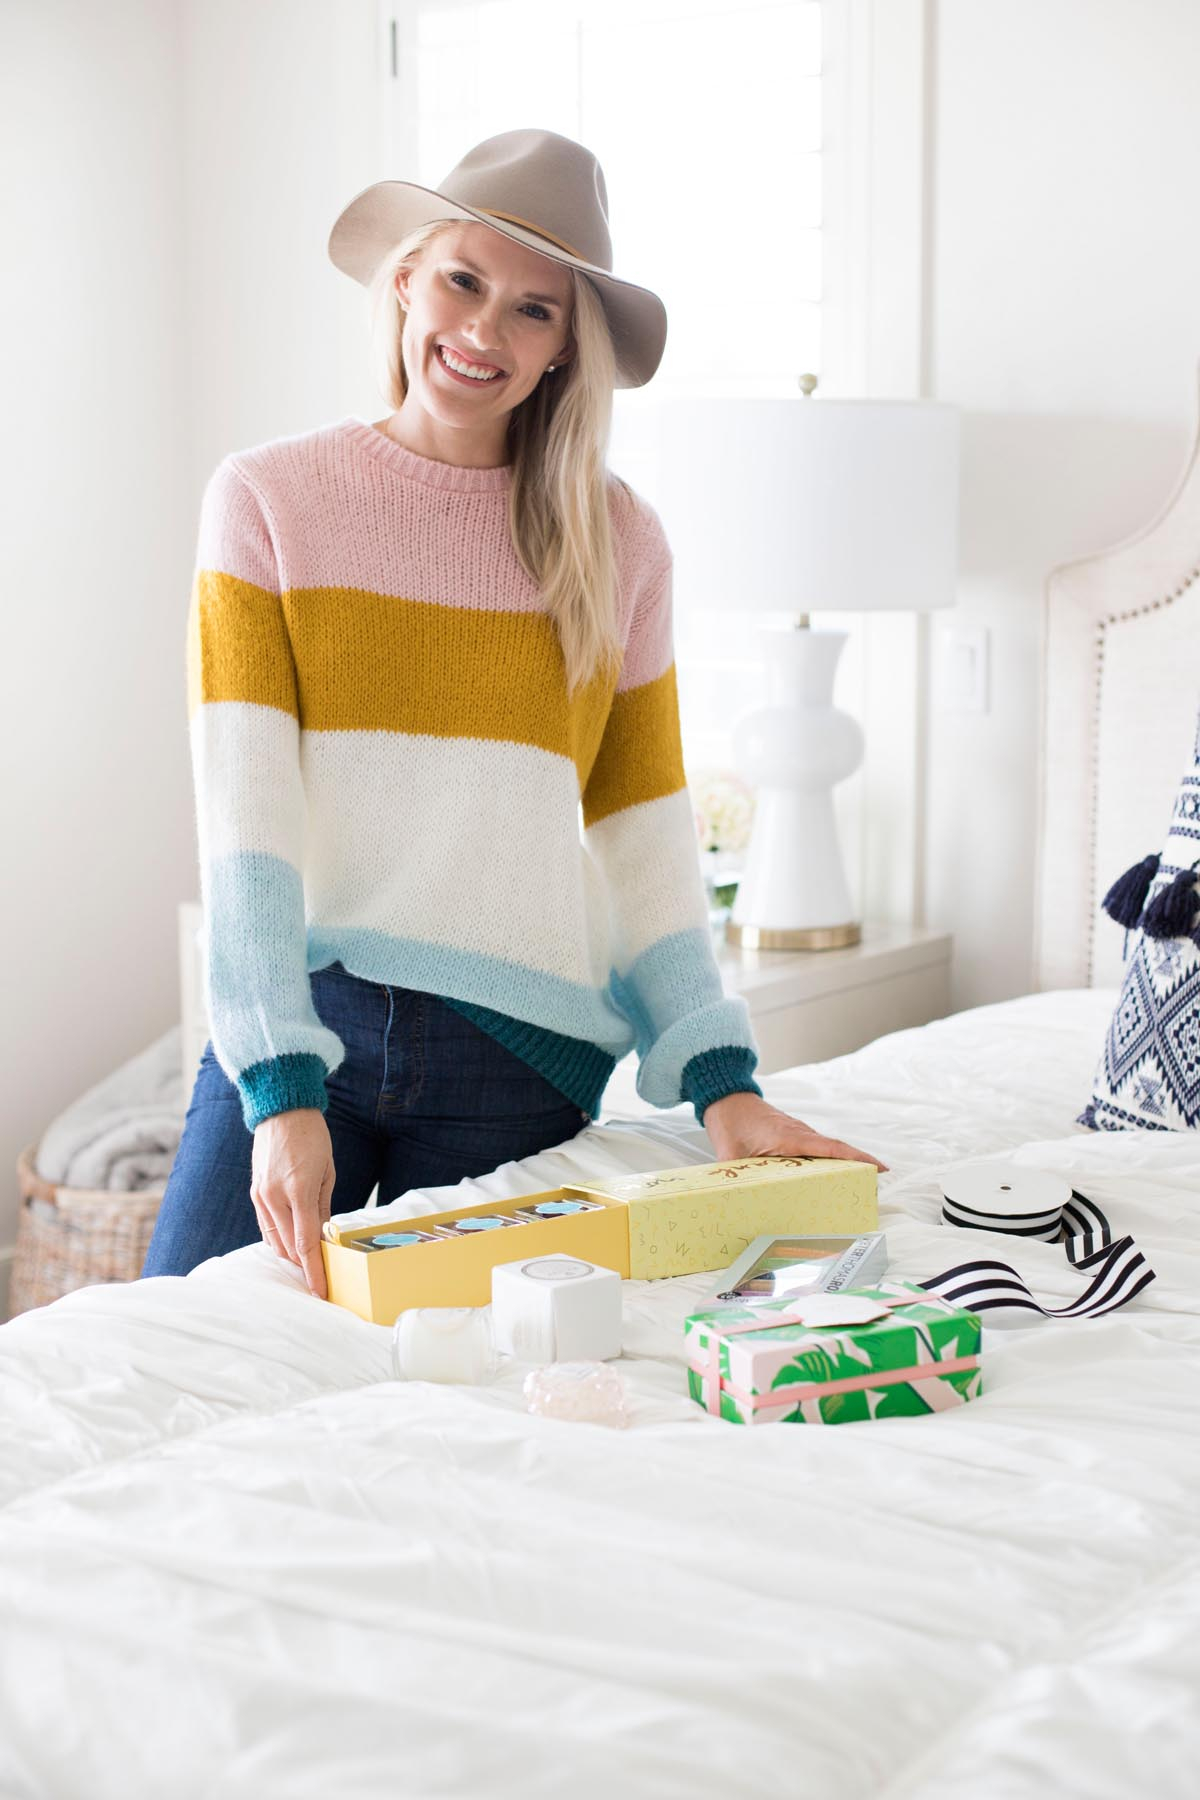 3 Gifts Ideas to Always Have on Hand